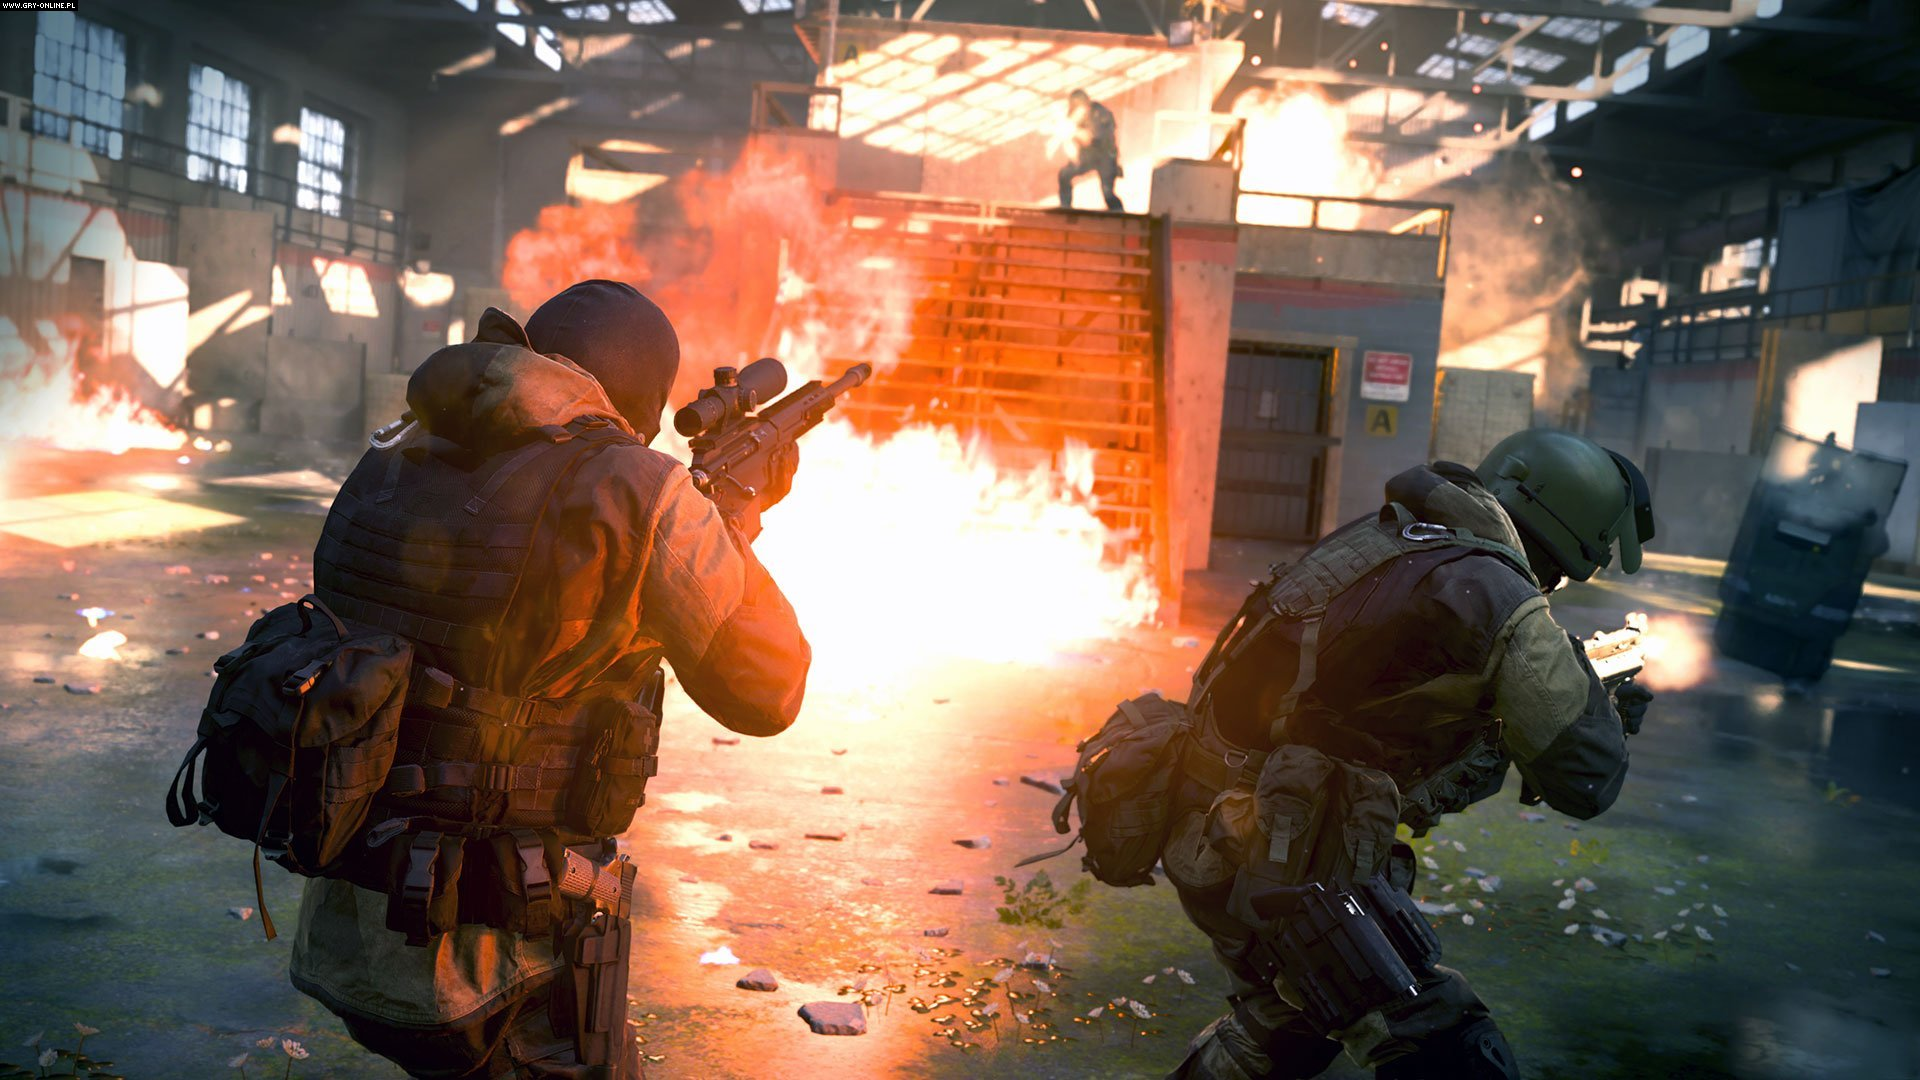 Call of Duty: Modern Warfare PC, PS4, XONE Games Image 39/47, Infinity Ward, Activision Blizzard